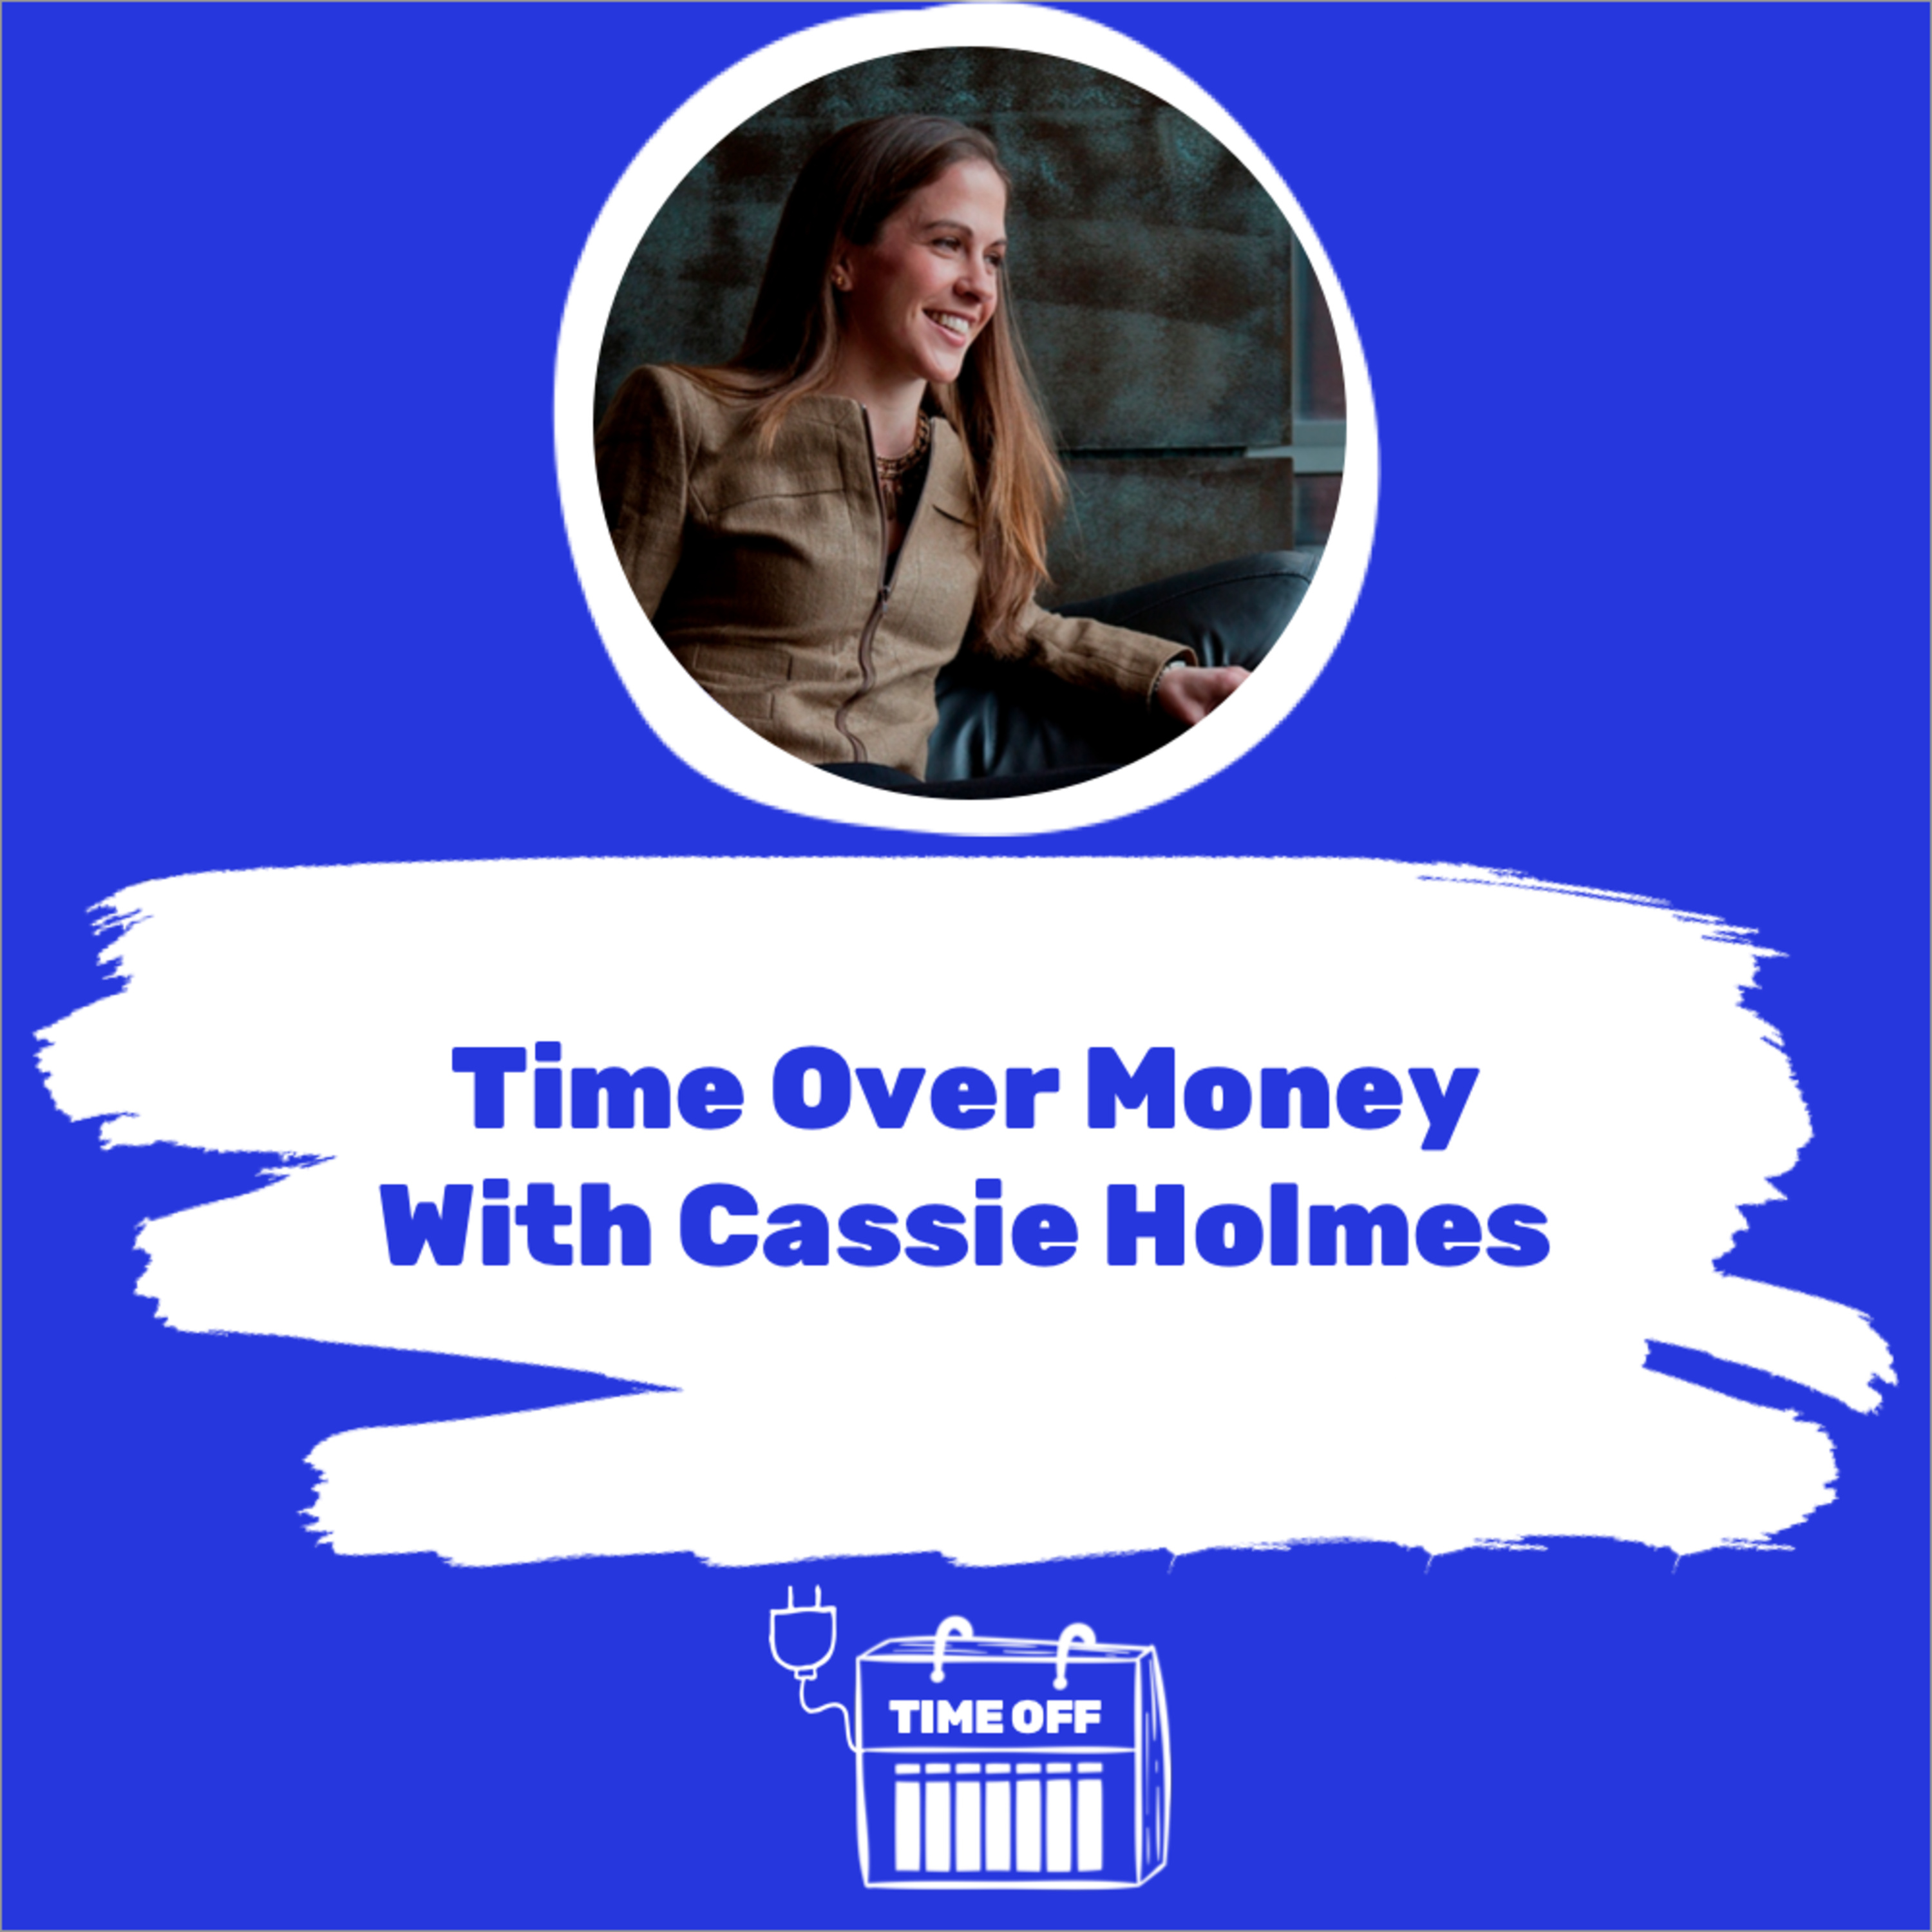 Time Over Money With Cassie Holmes